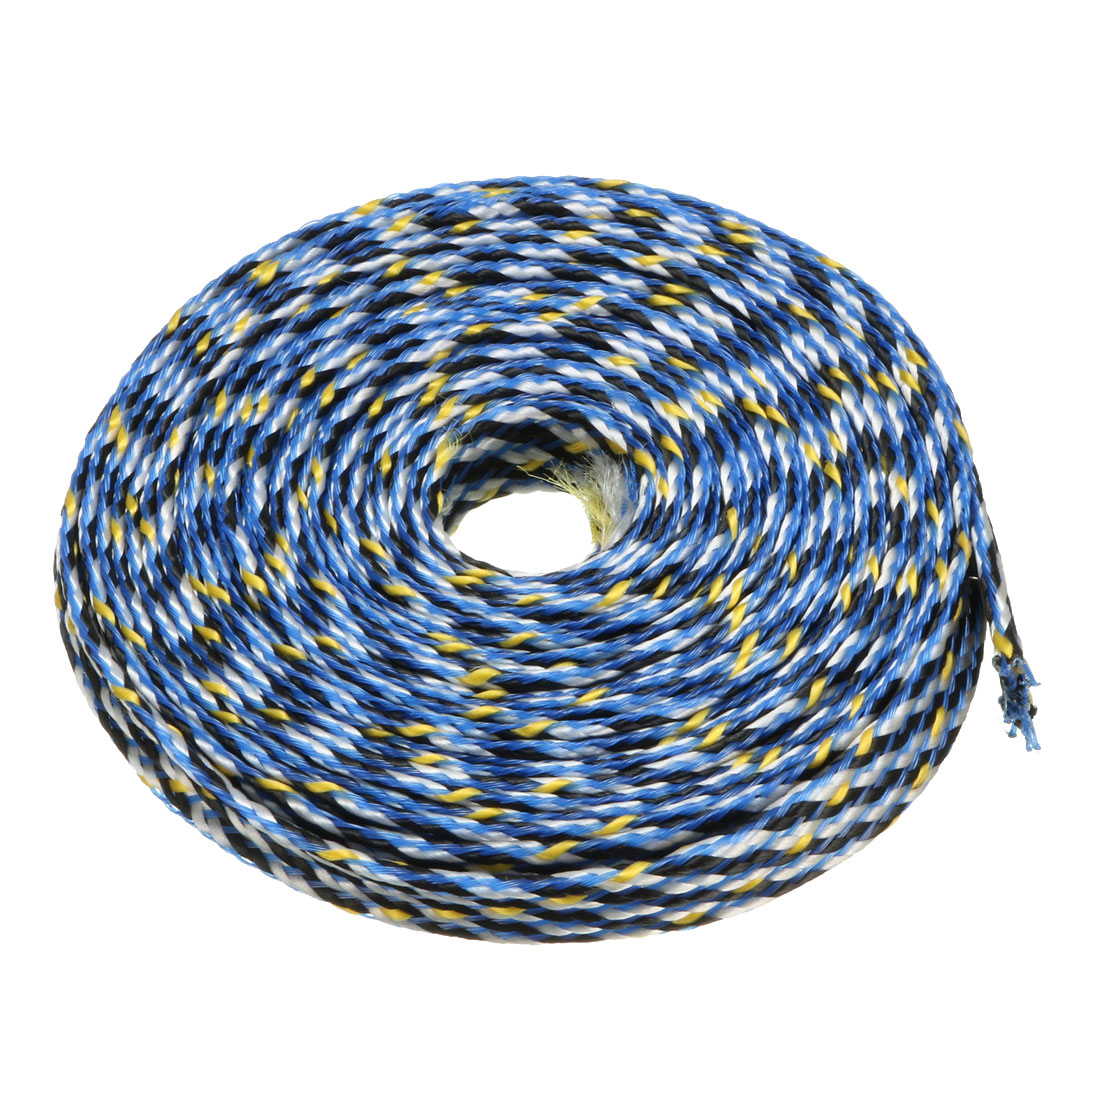 8mm PET Cable Wire Wrap Expandable Braided Sleeving Blue Yellow 5M Length